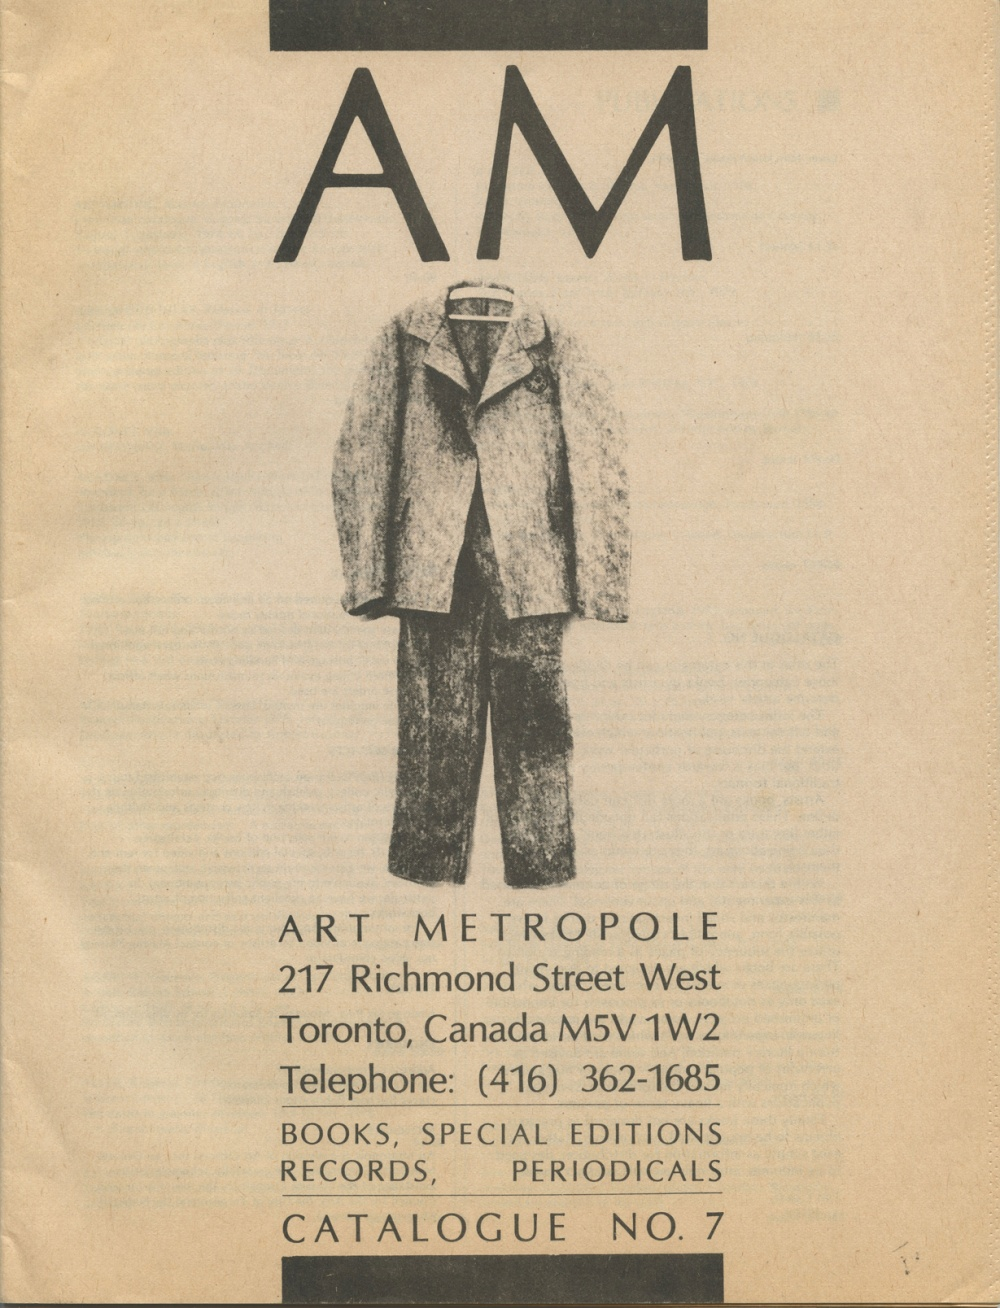 Art Metropole. Books, Special Editions, Records, Periodicals, Ca